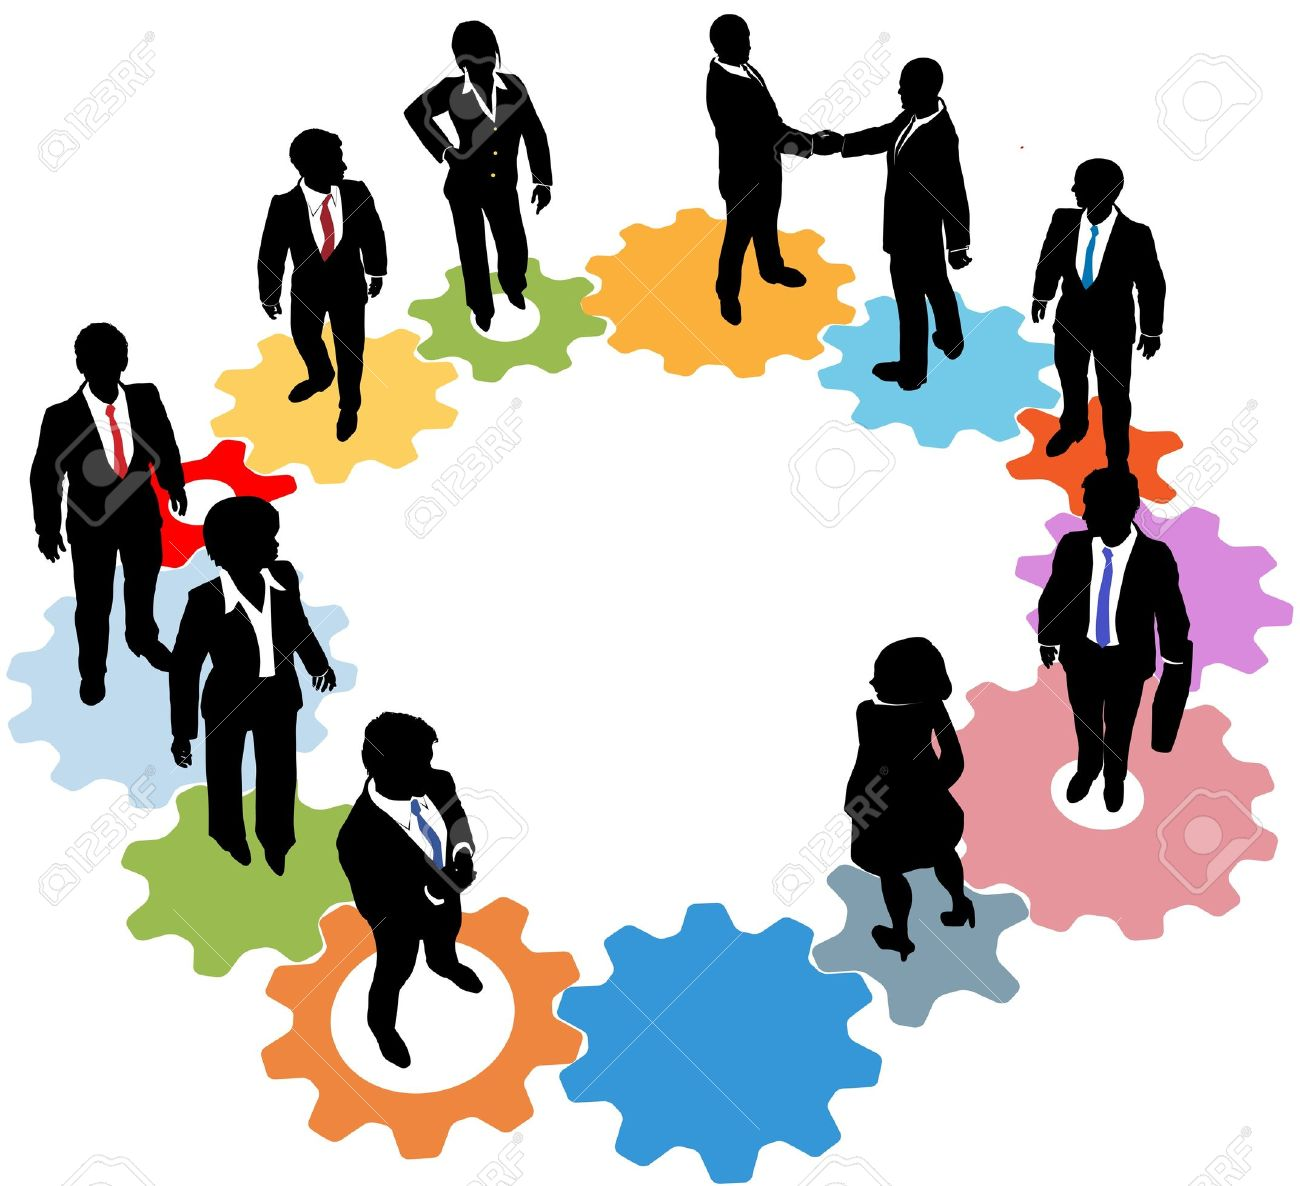 Business collaboration clipart image library stock Business People Clipart | Free download best Business People Clipart ... image library stock